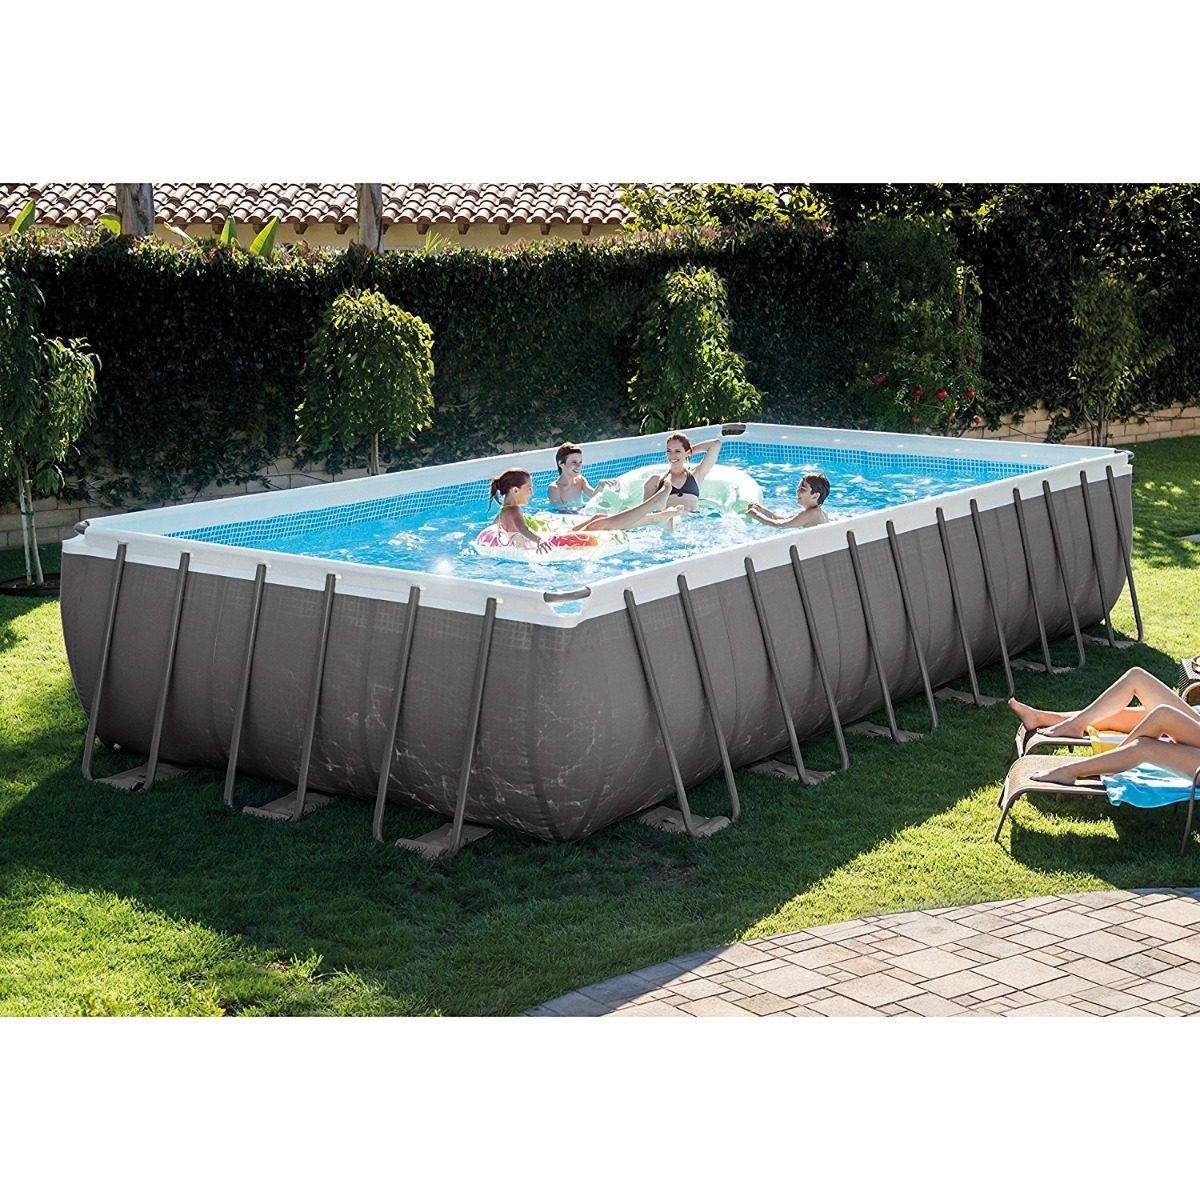 Excepcional 16 Pies Piscina Intex De Ultra Marco Colección - Ideas ...